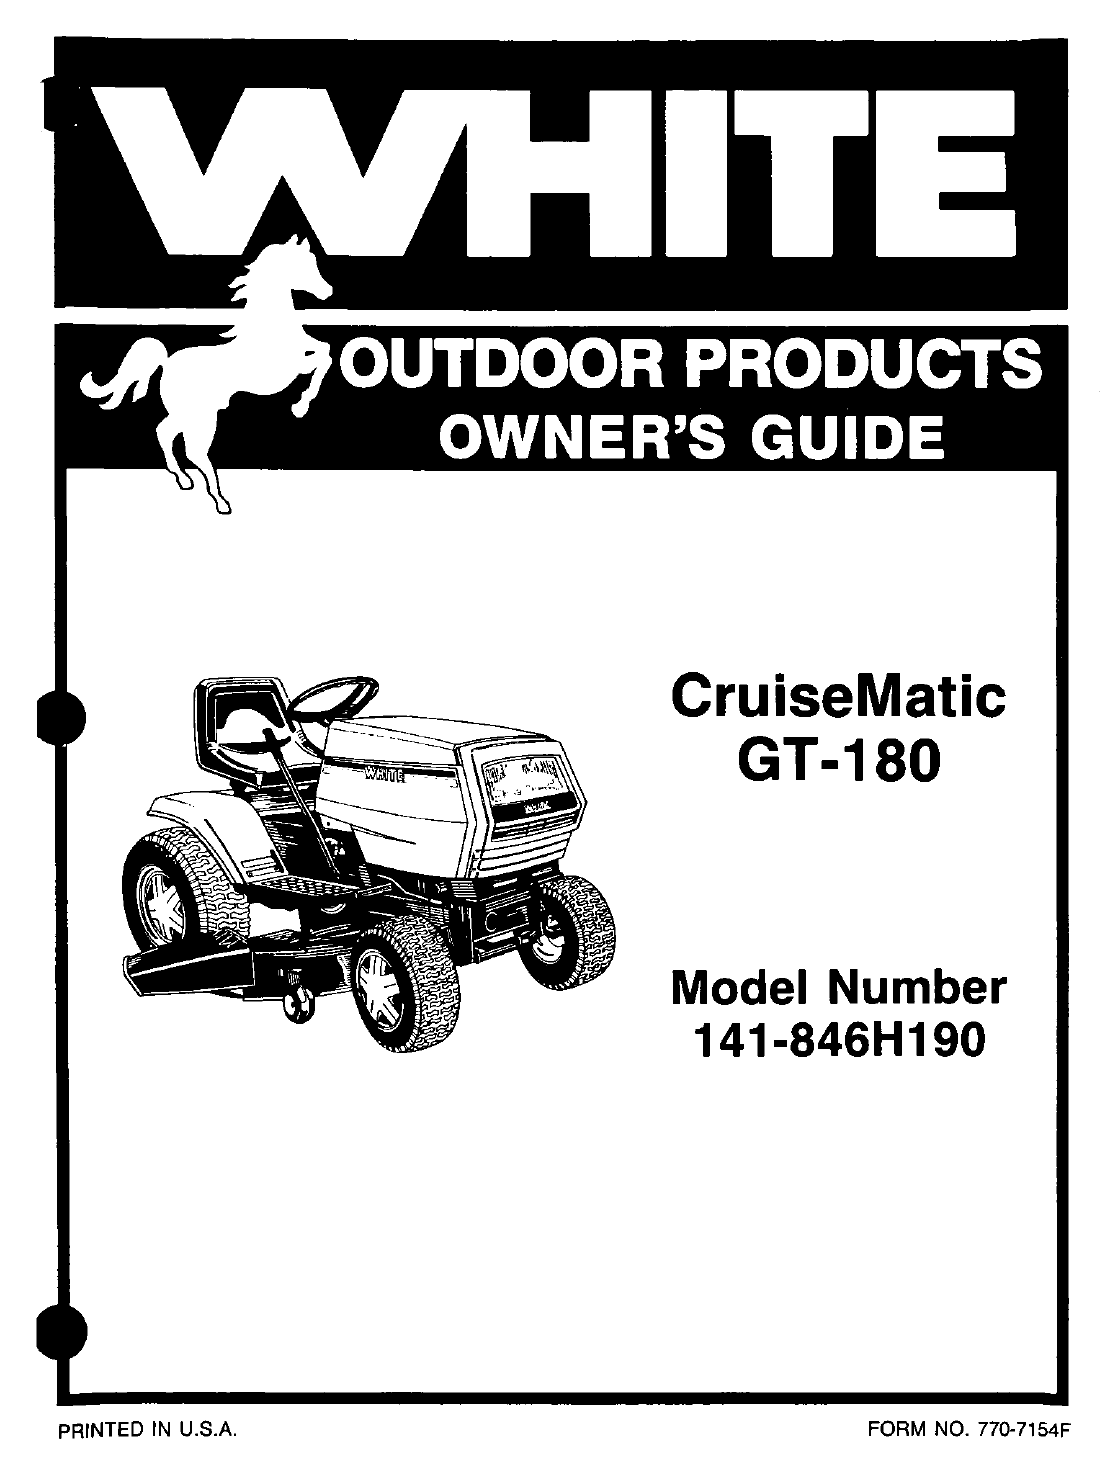 White Outdoor Lawn Mower 141-846H190 User Guide